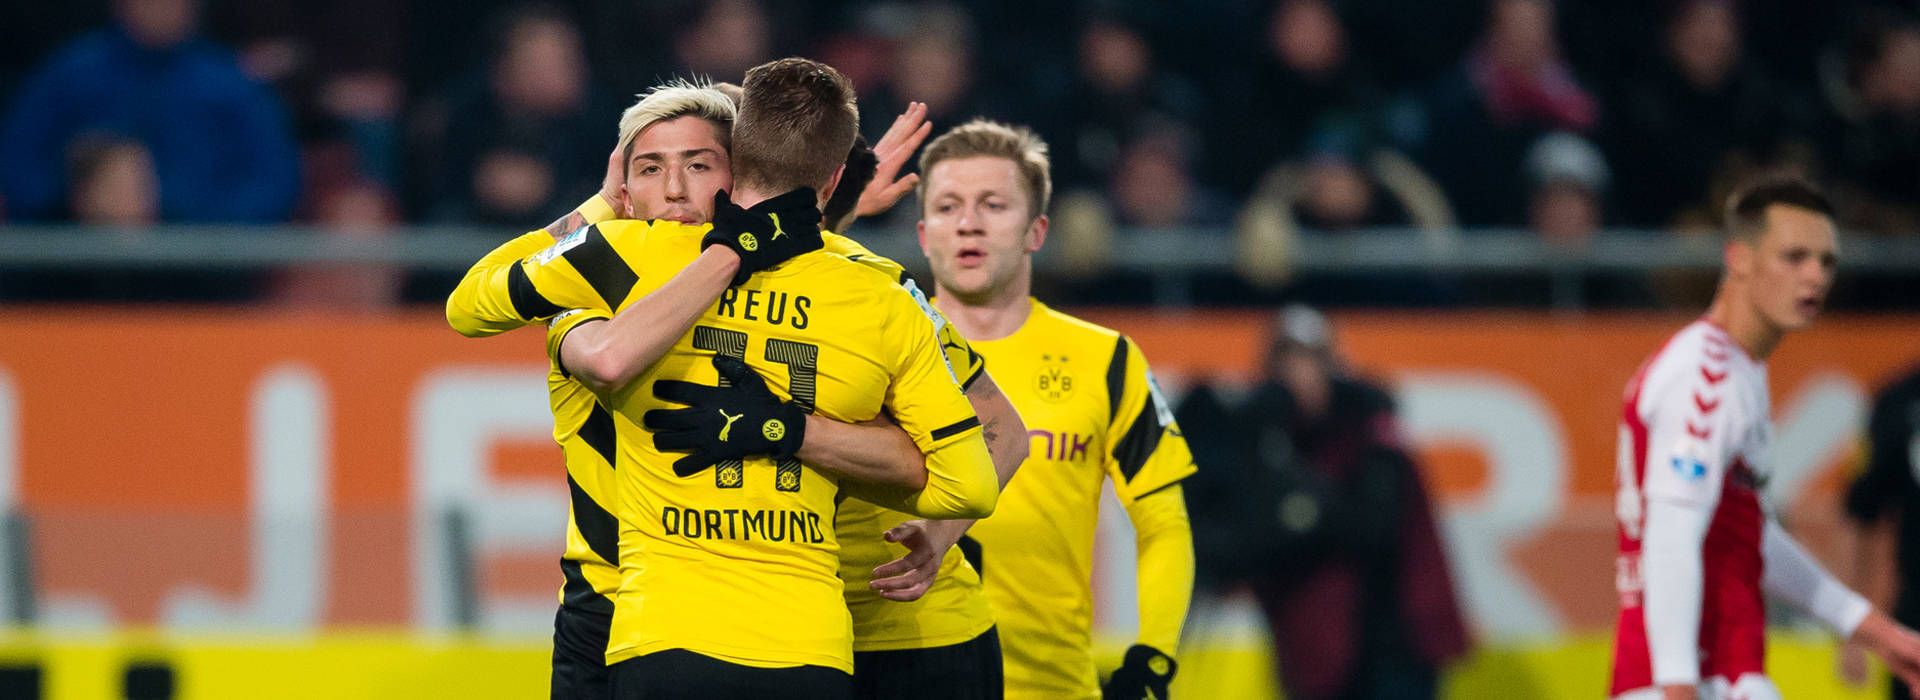 Borussia Dortmund Website